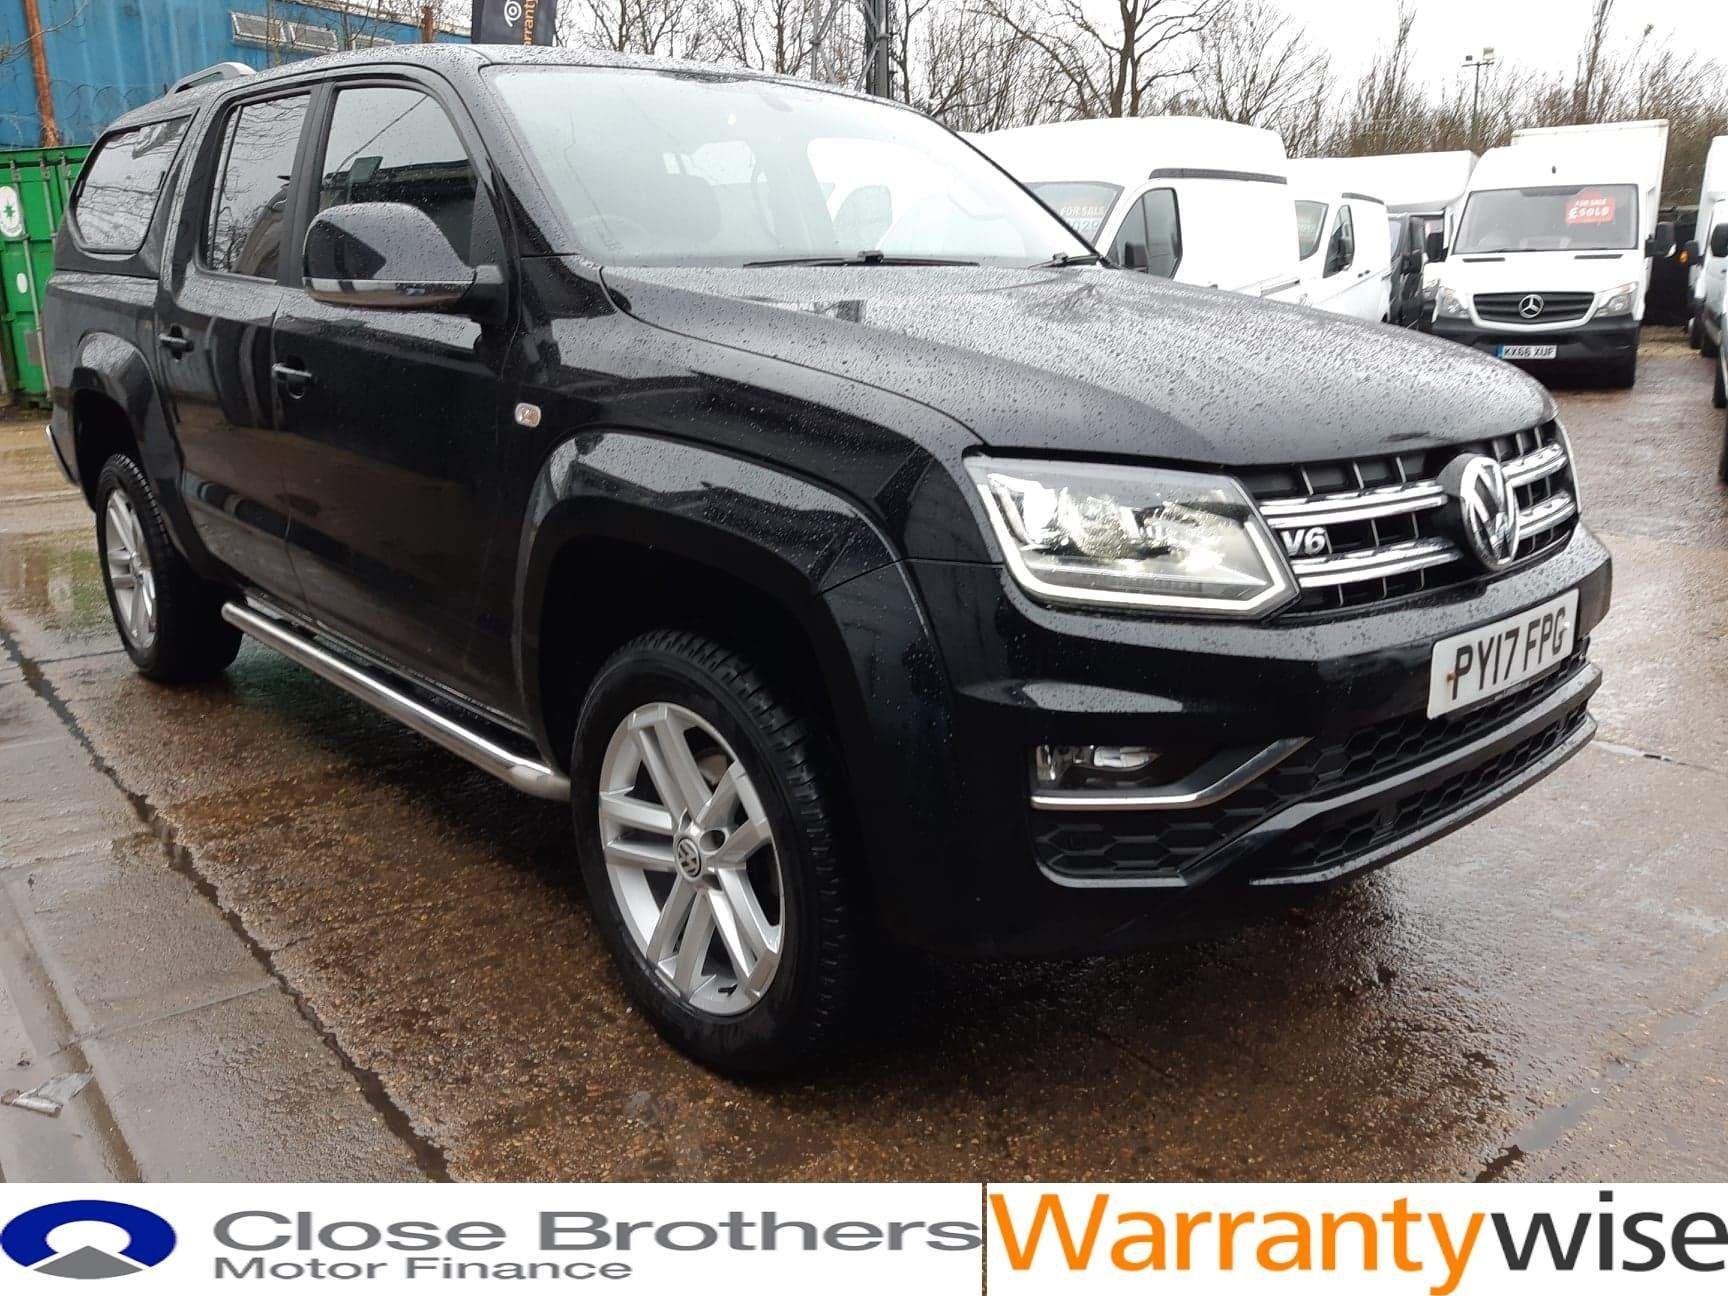 Volkswagen Amarok 3.0 TDI V6 BlueMotion Tech Highline Double Cab Pickup Auto 4Motion (s/s) 4dr